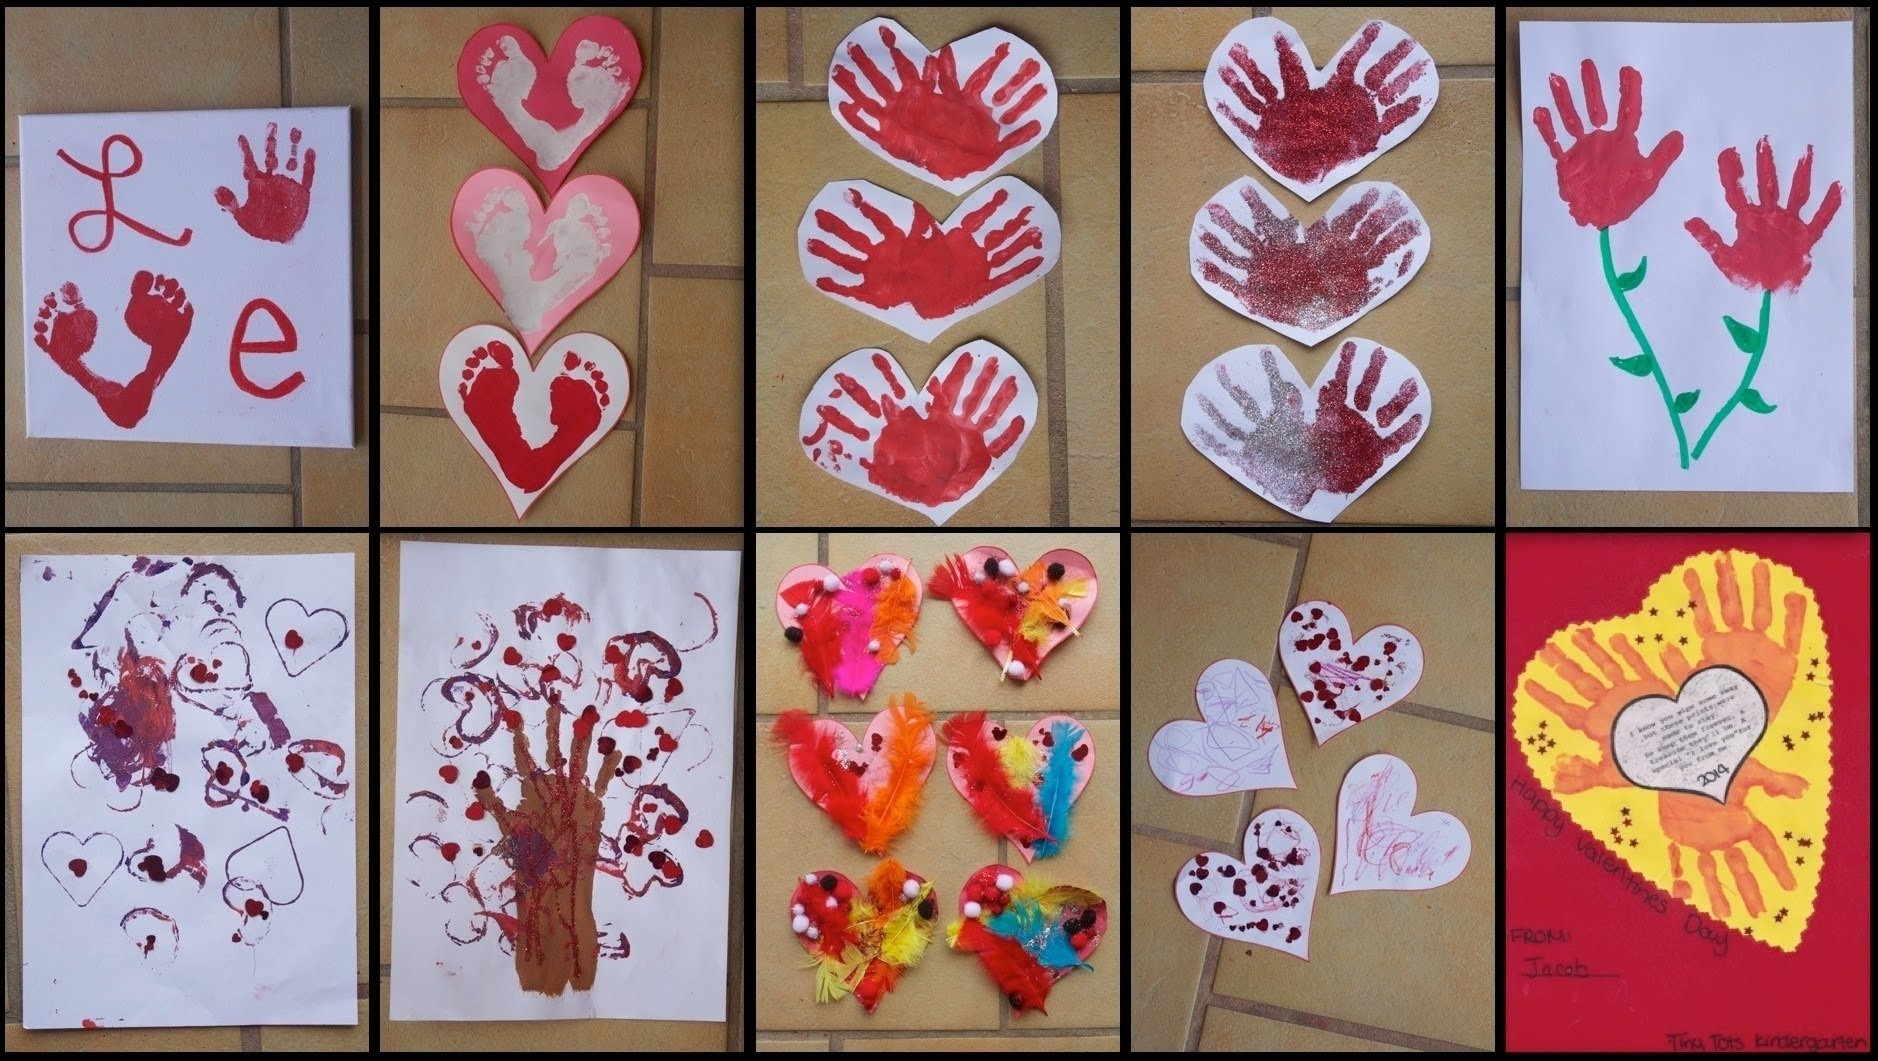 9 valentine's day crafts for toddlers & kids! - youtube